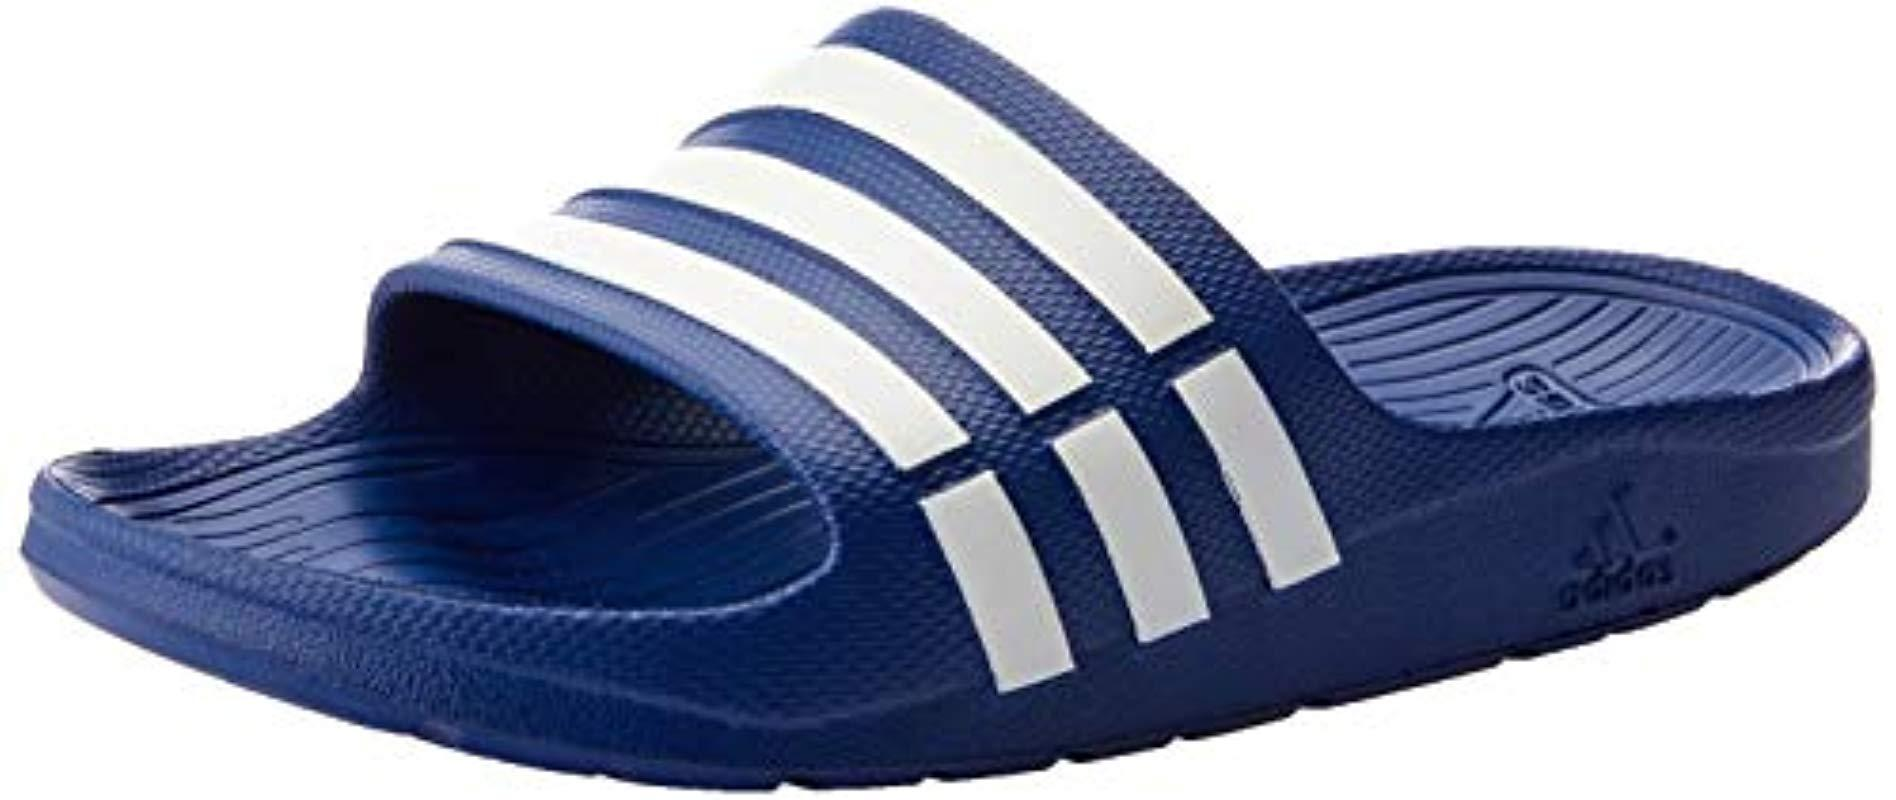 2942e3bc9c5936 adidas Adults  Duramo Slide Beach   Pool Shoes in Blue for Men ...